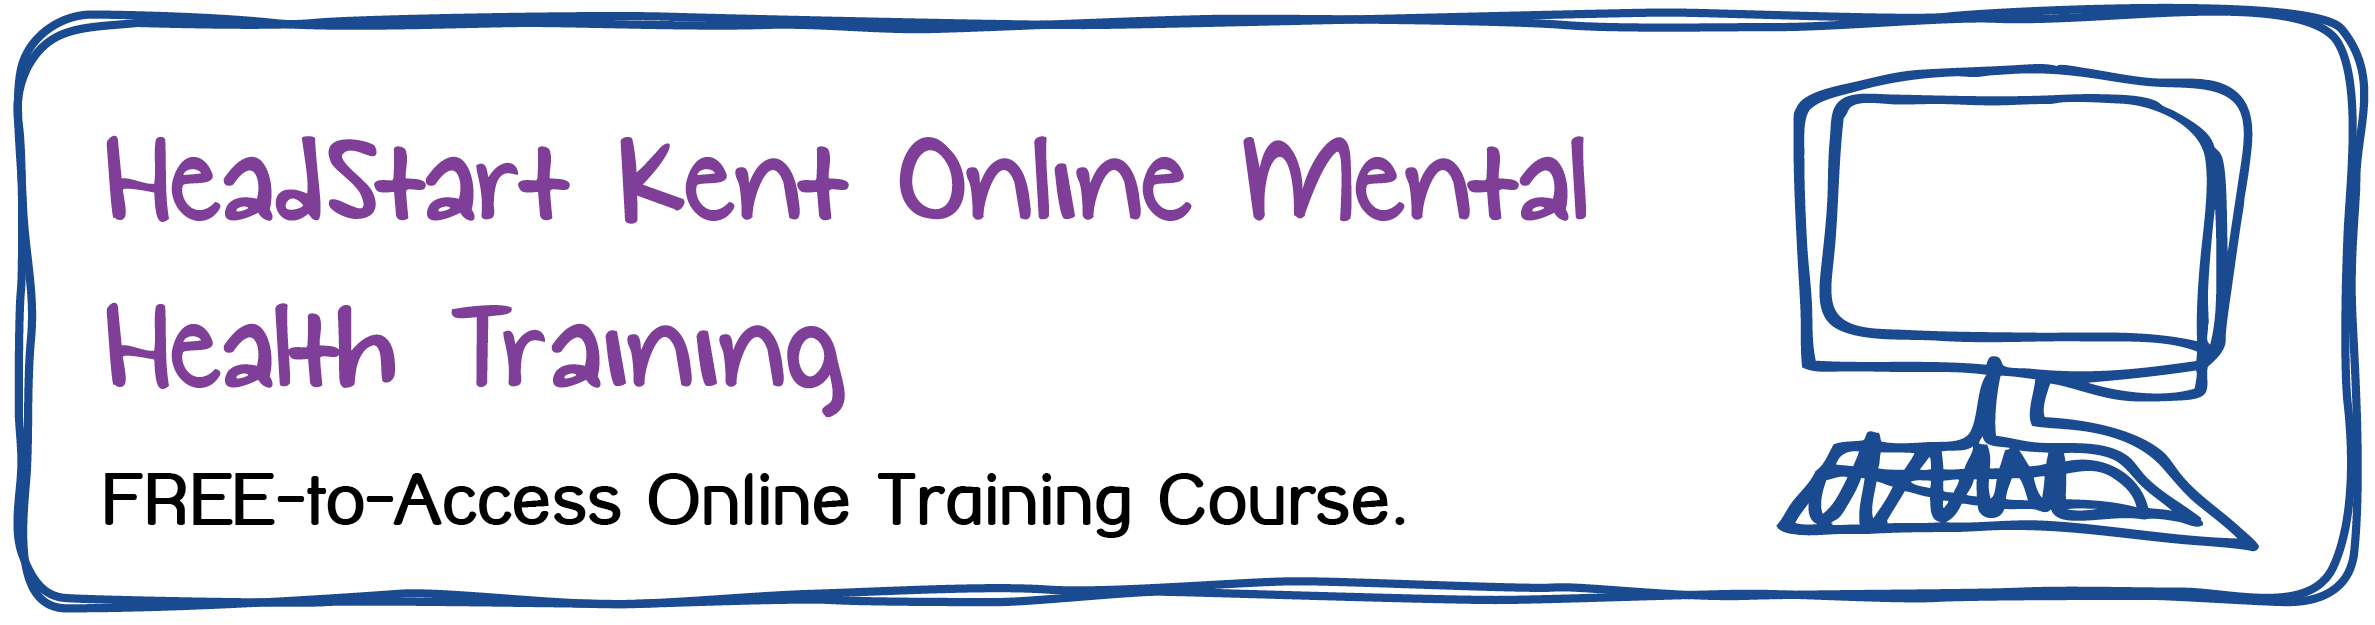 HeadStart Kent Online Mental Health Training FREE-to-Access Online Training Course.